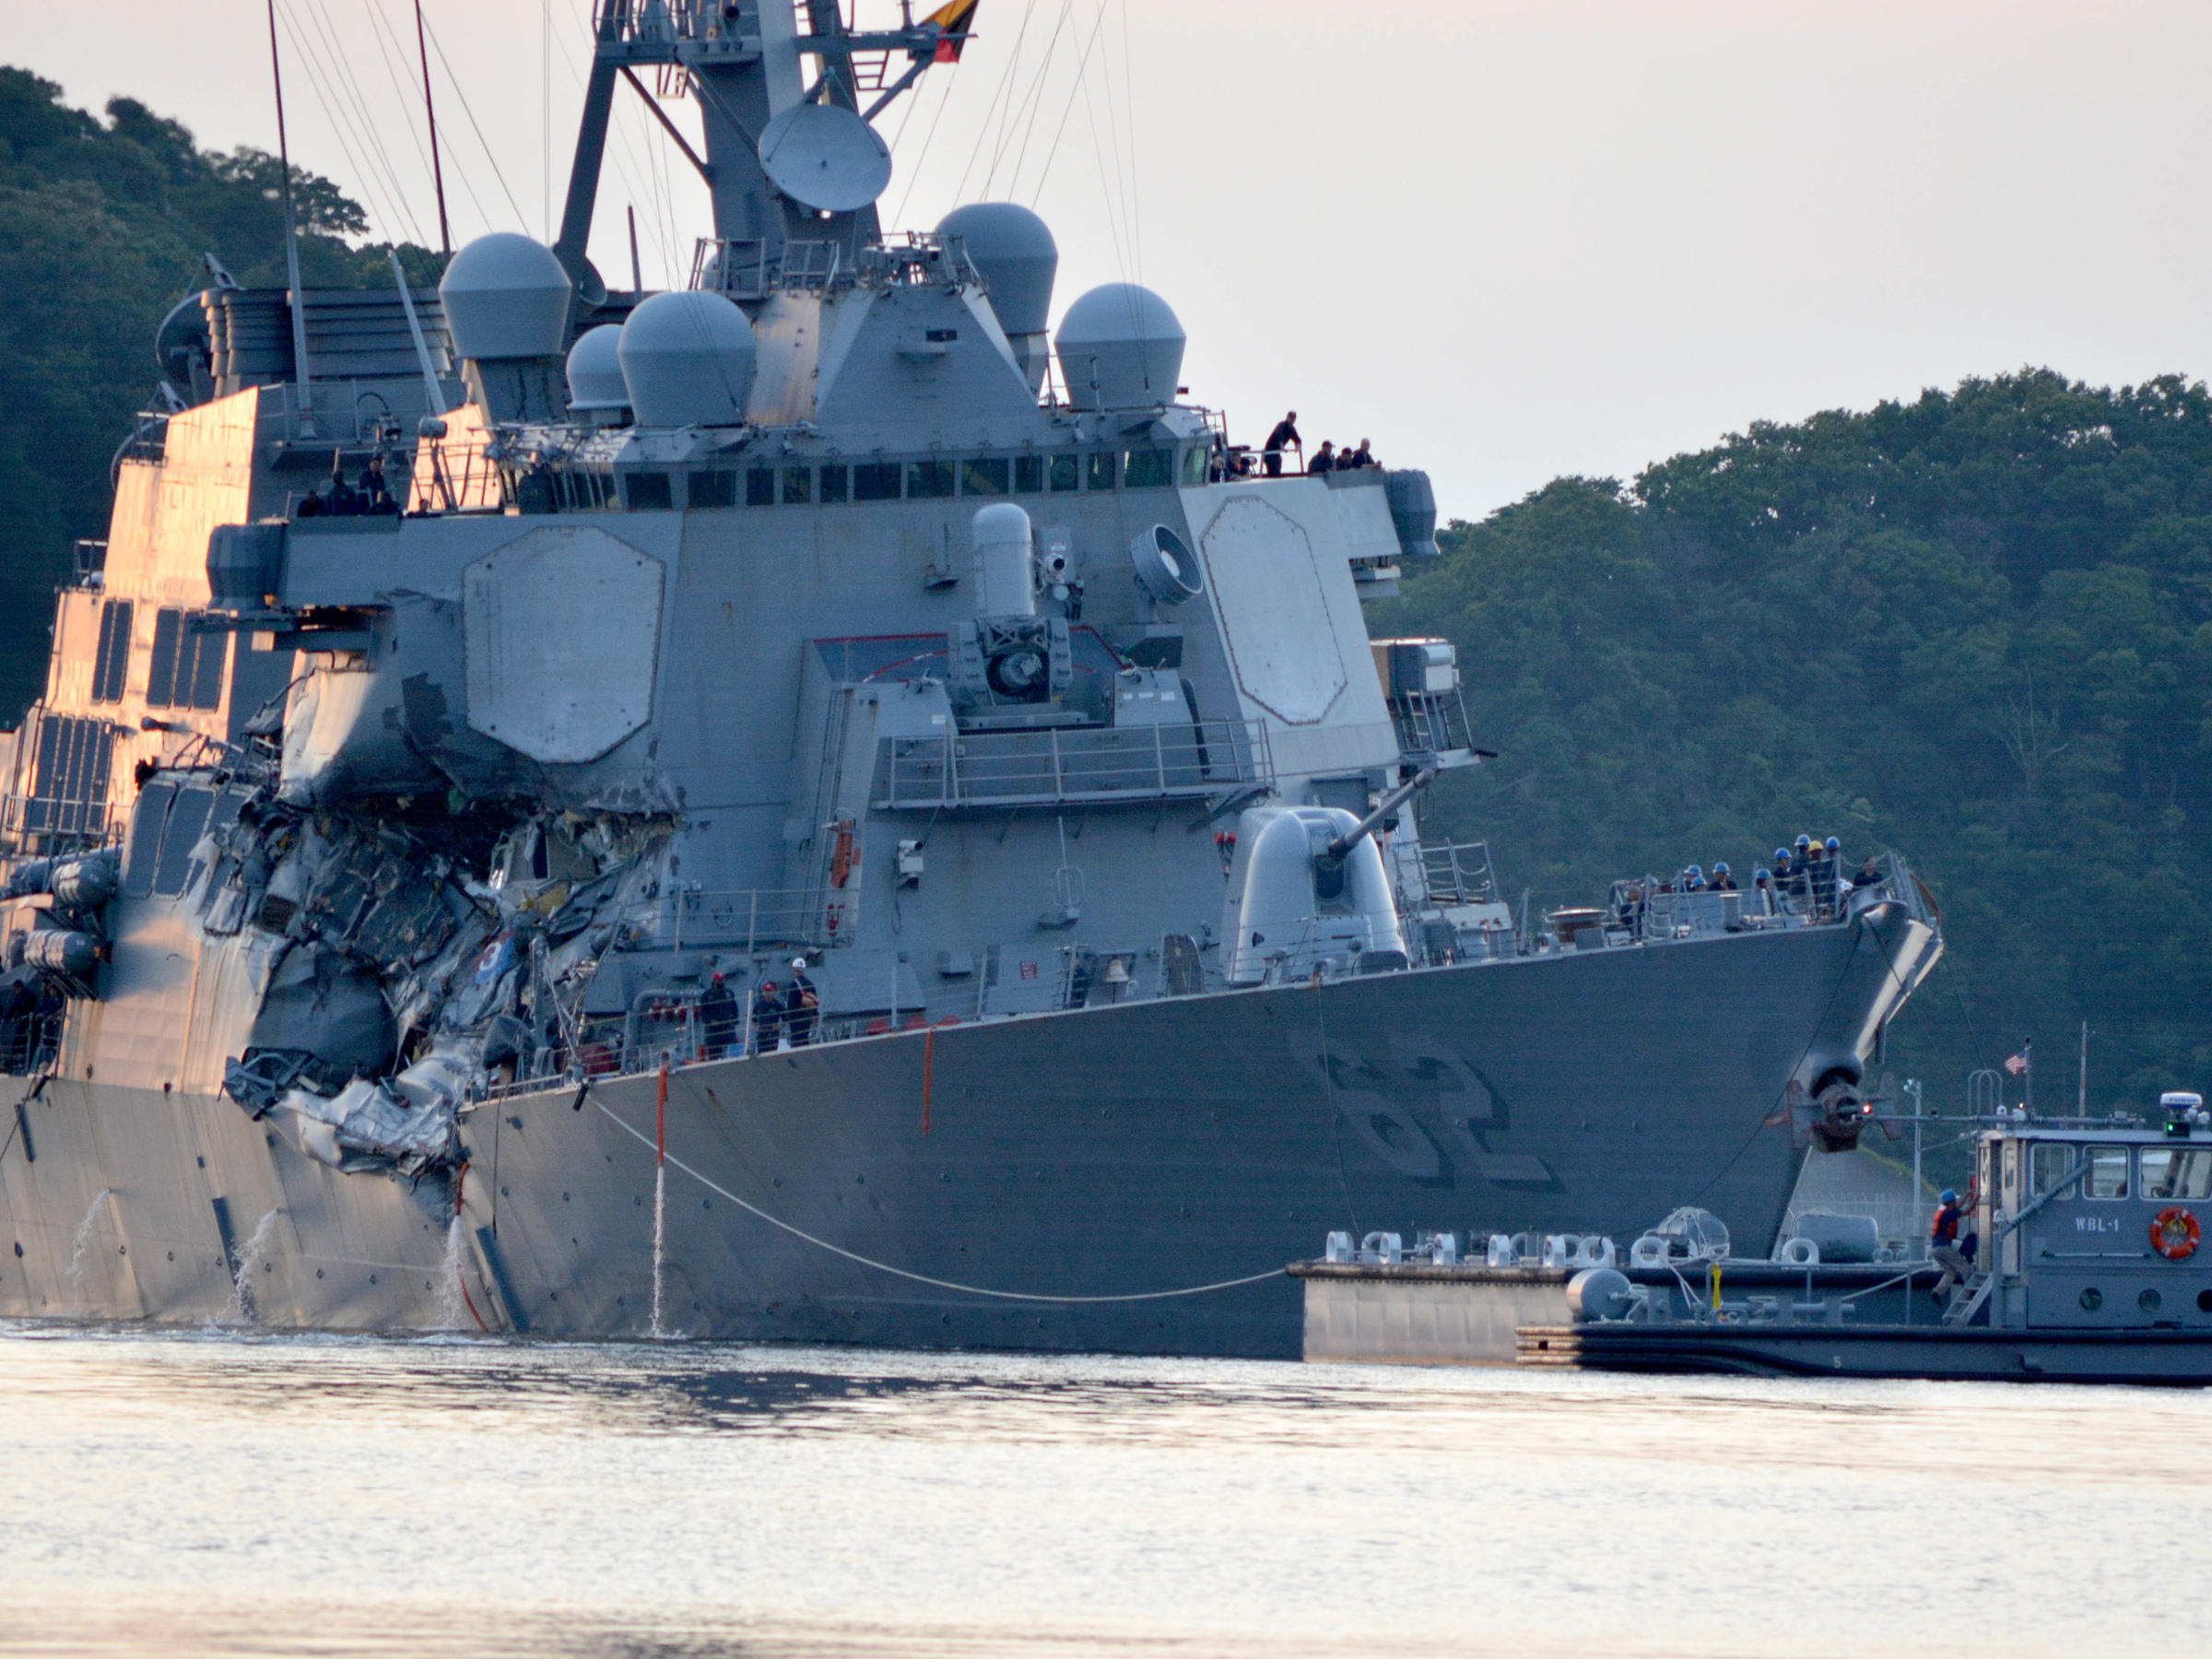 All 7 Missing Sailors Found Dead In Flooded Compartments Of USS Fitzgerald